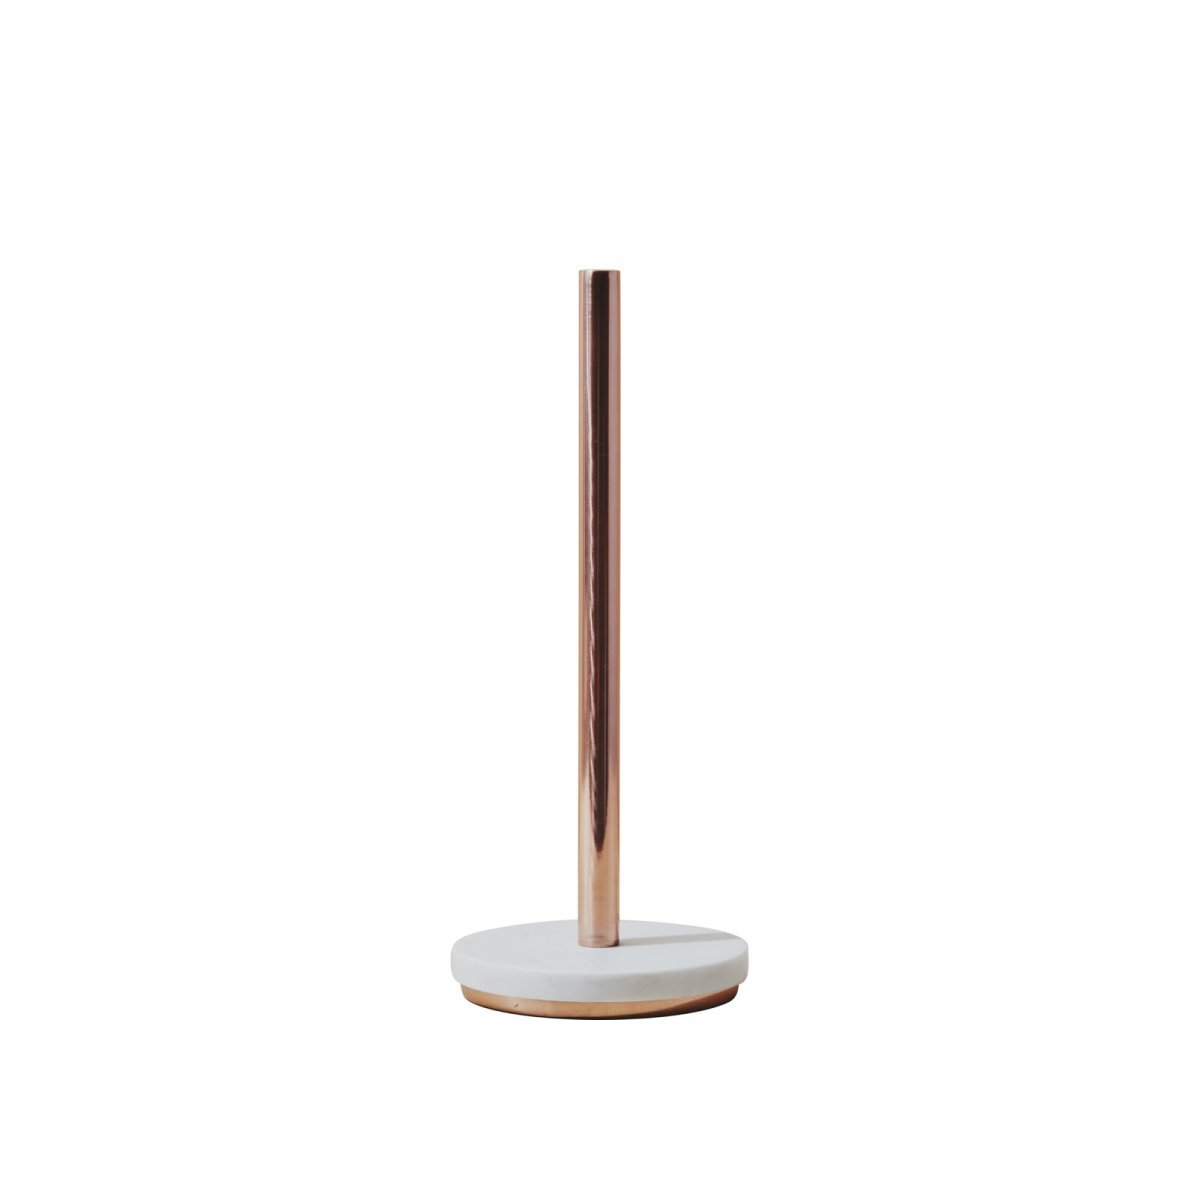 Mara Paper Towel Holder, copper.